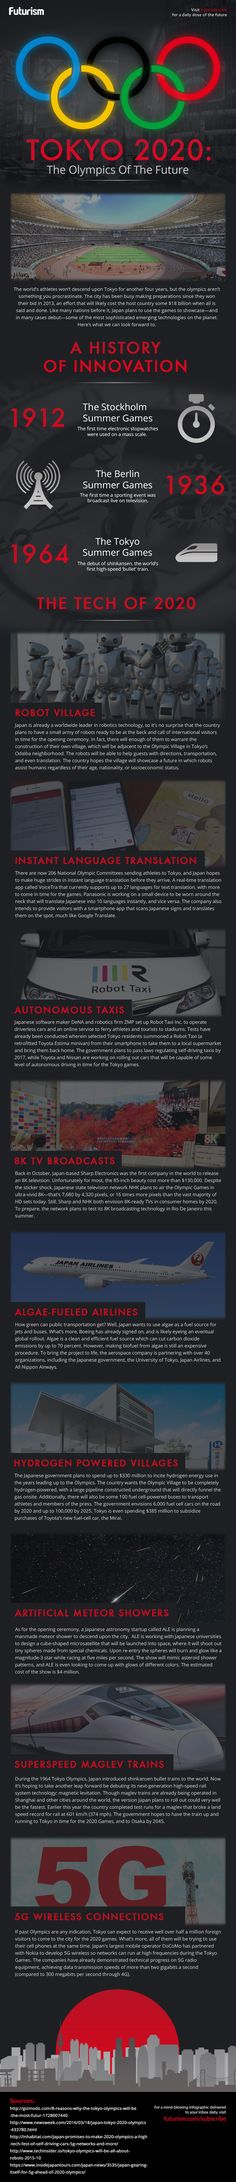 Tokyo promises to be the most futuristic Olympics yet, with plans for autonomous taxis, instant language translation, artificial meteor showers, and more.